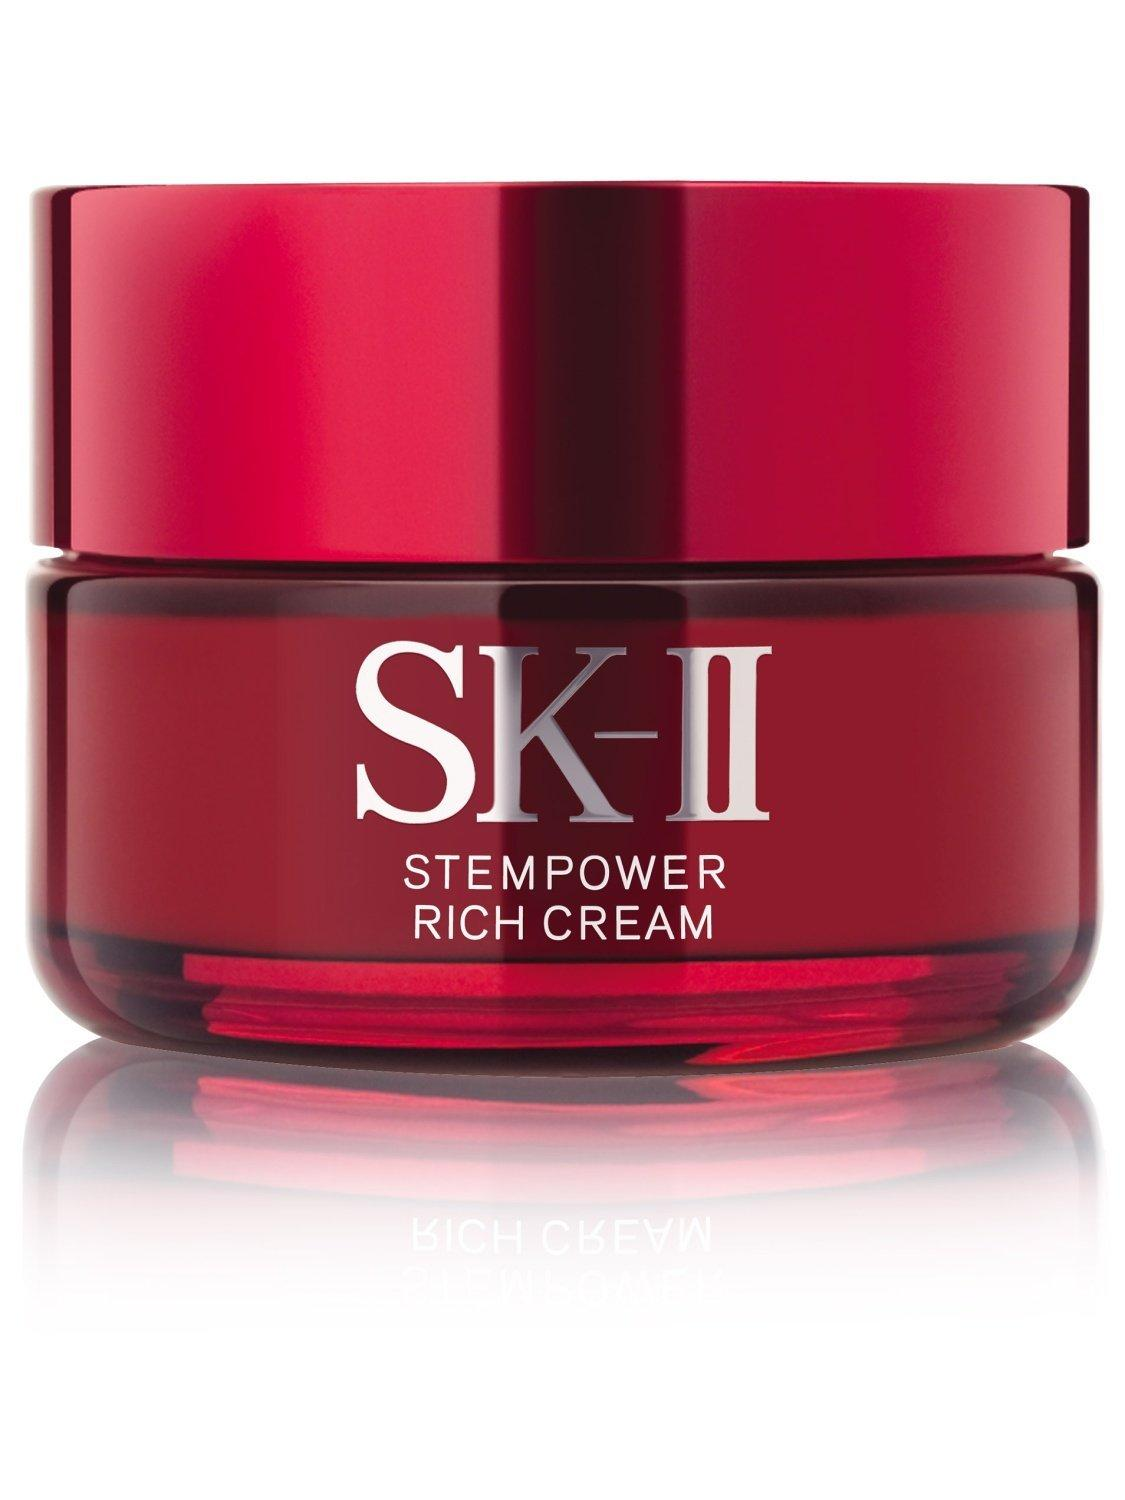 SK II STEM POWER RICH